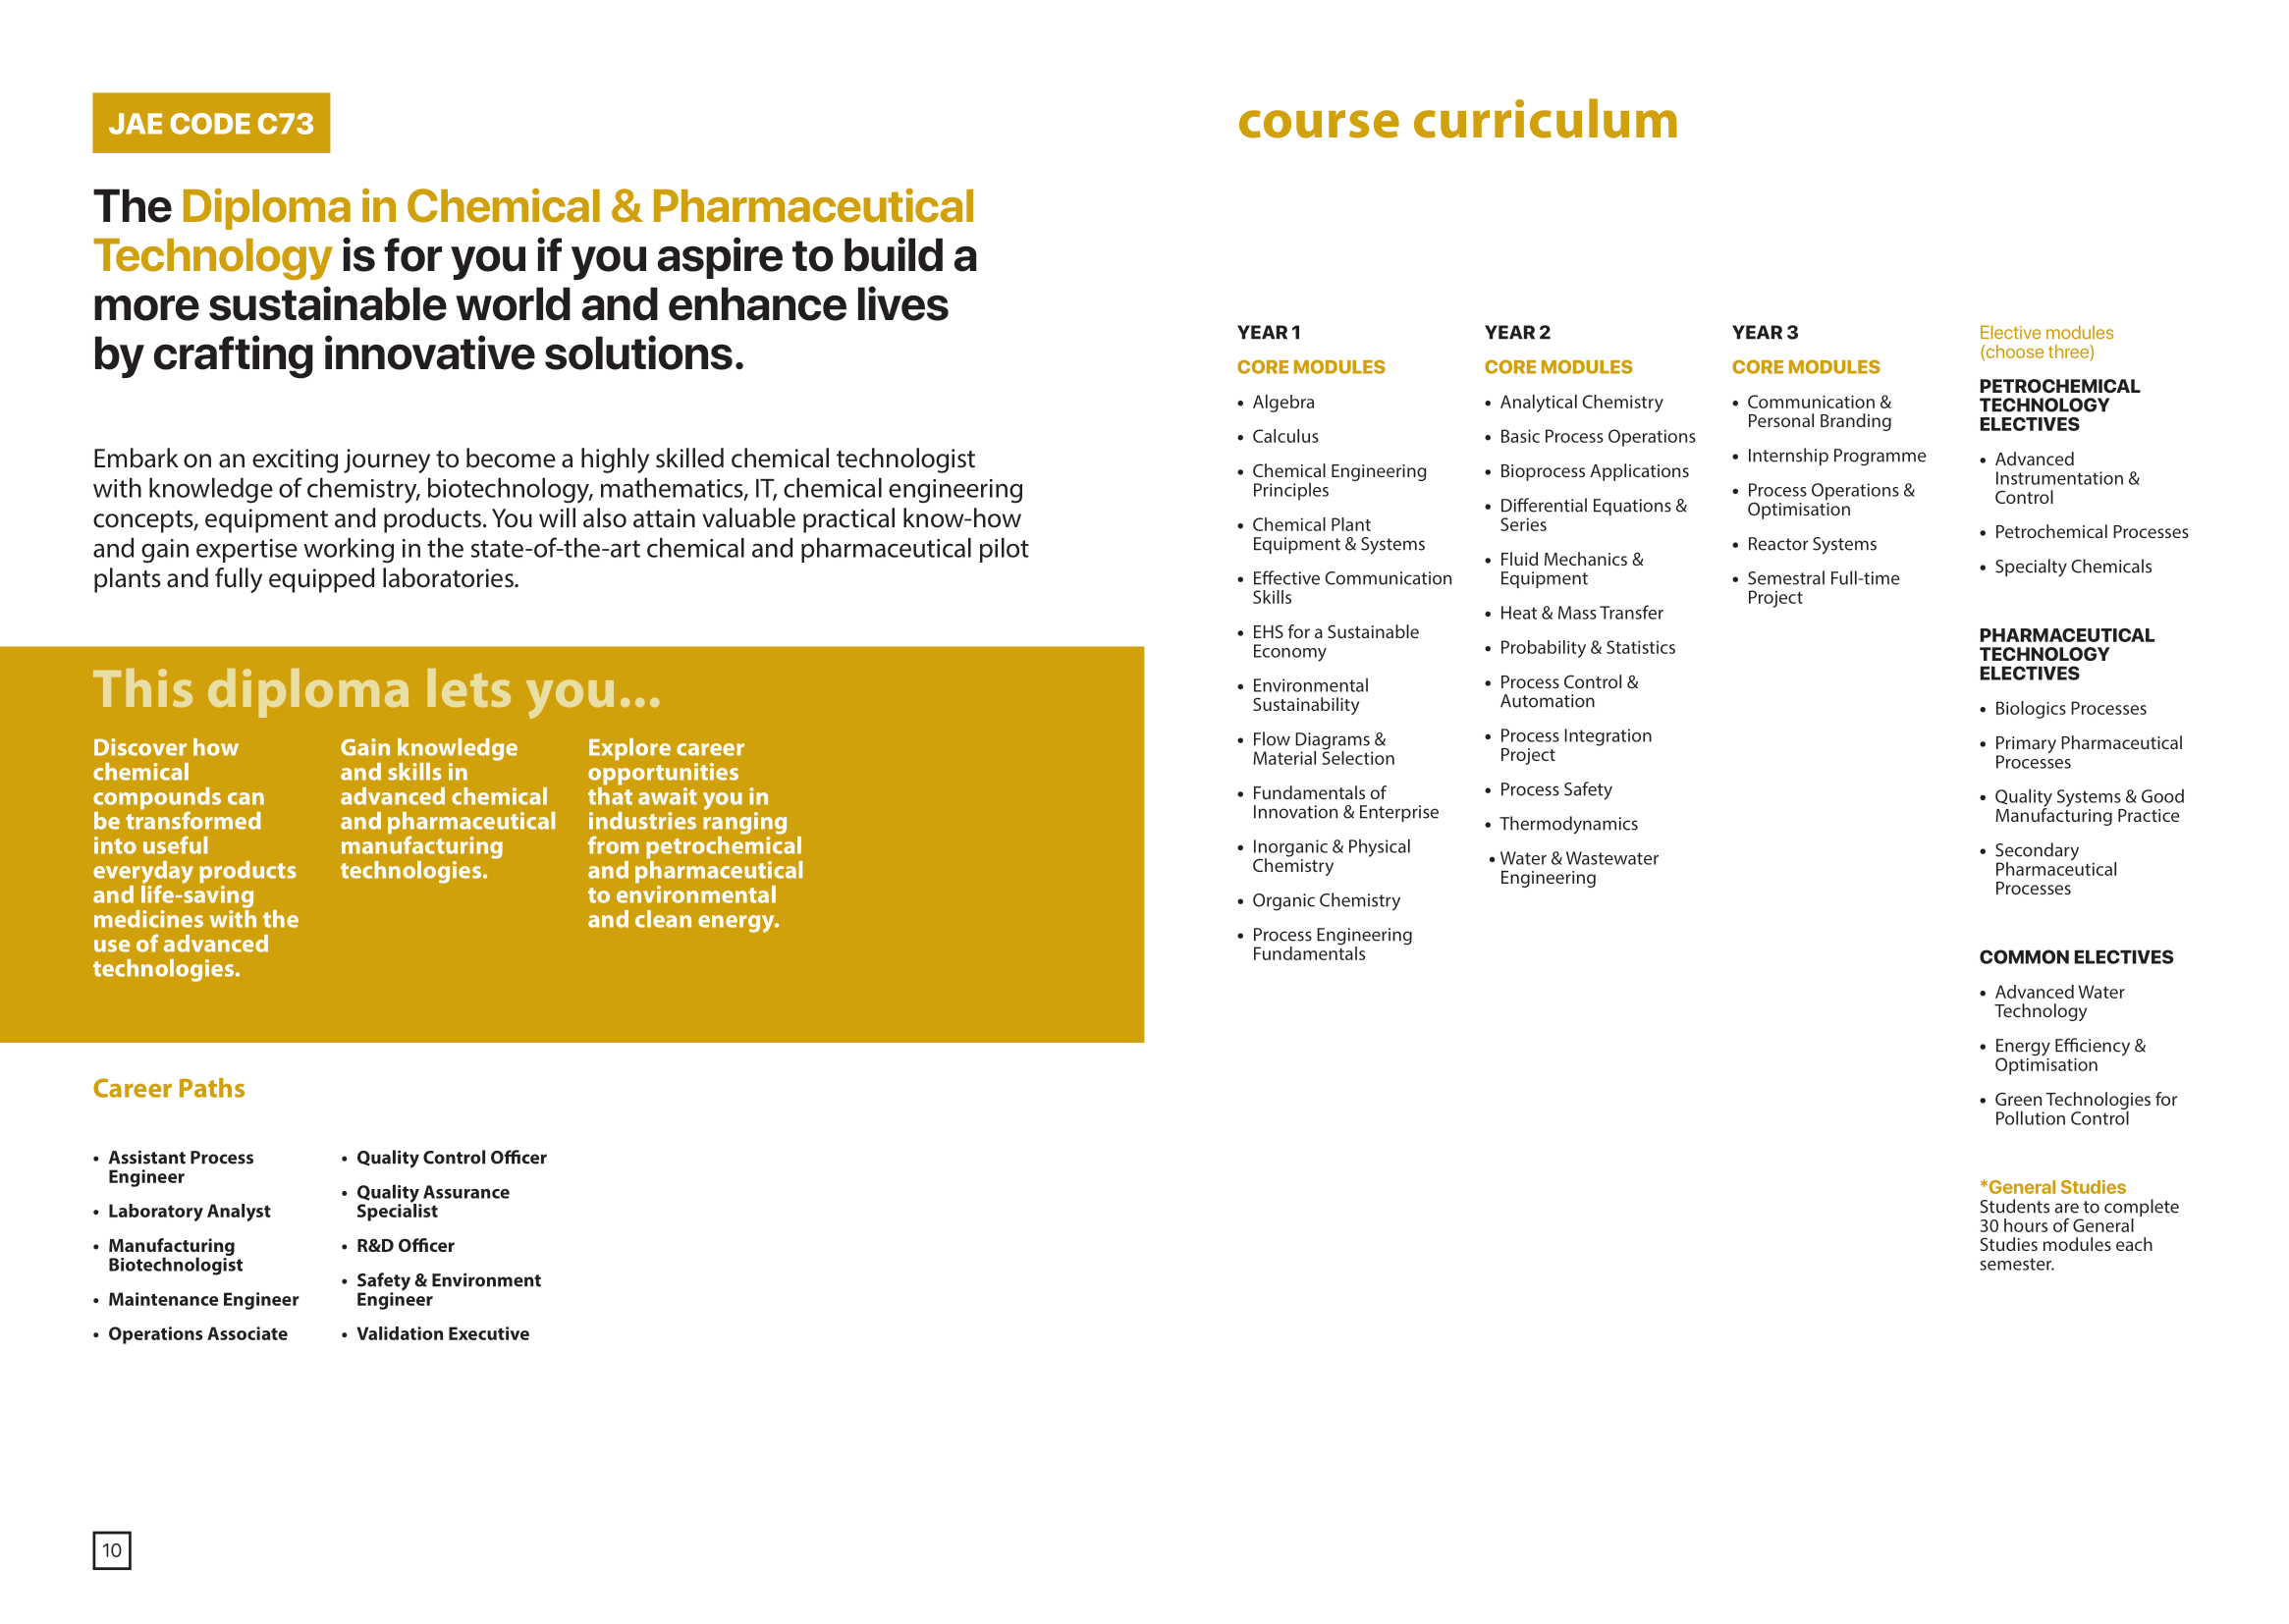 School of Chemical and Life Sciences 2020-07